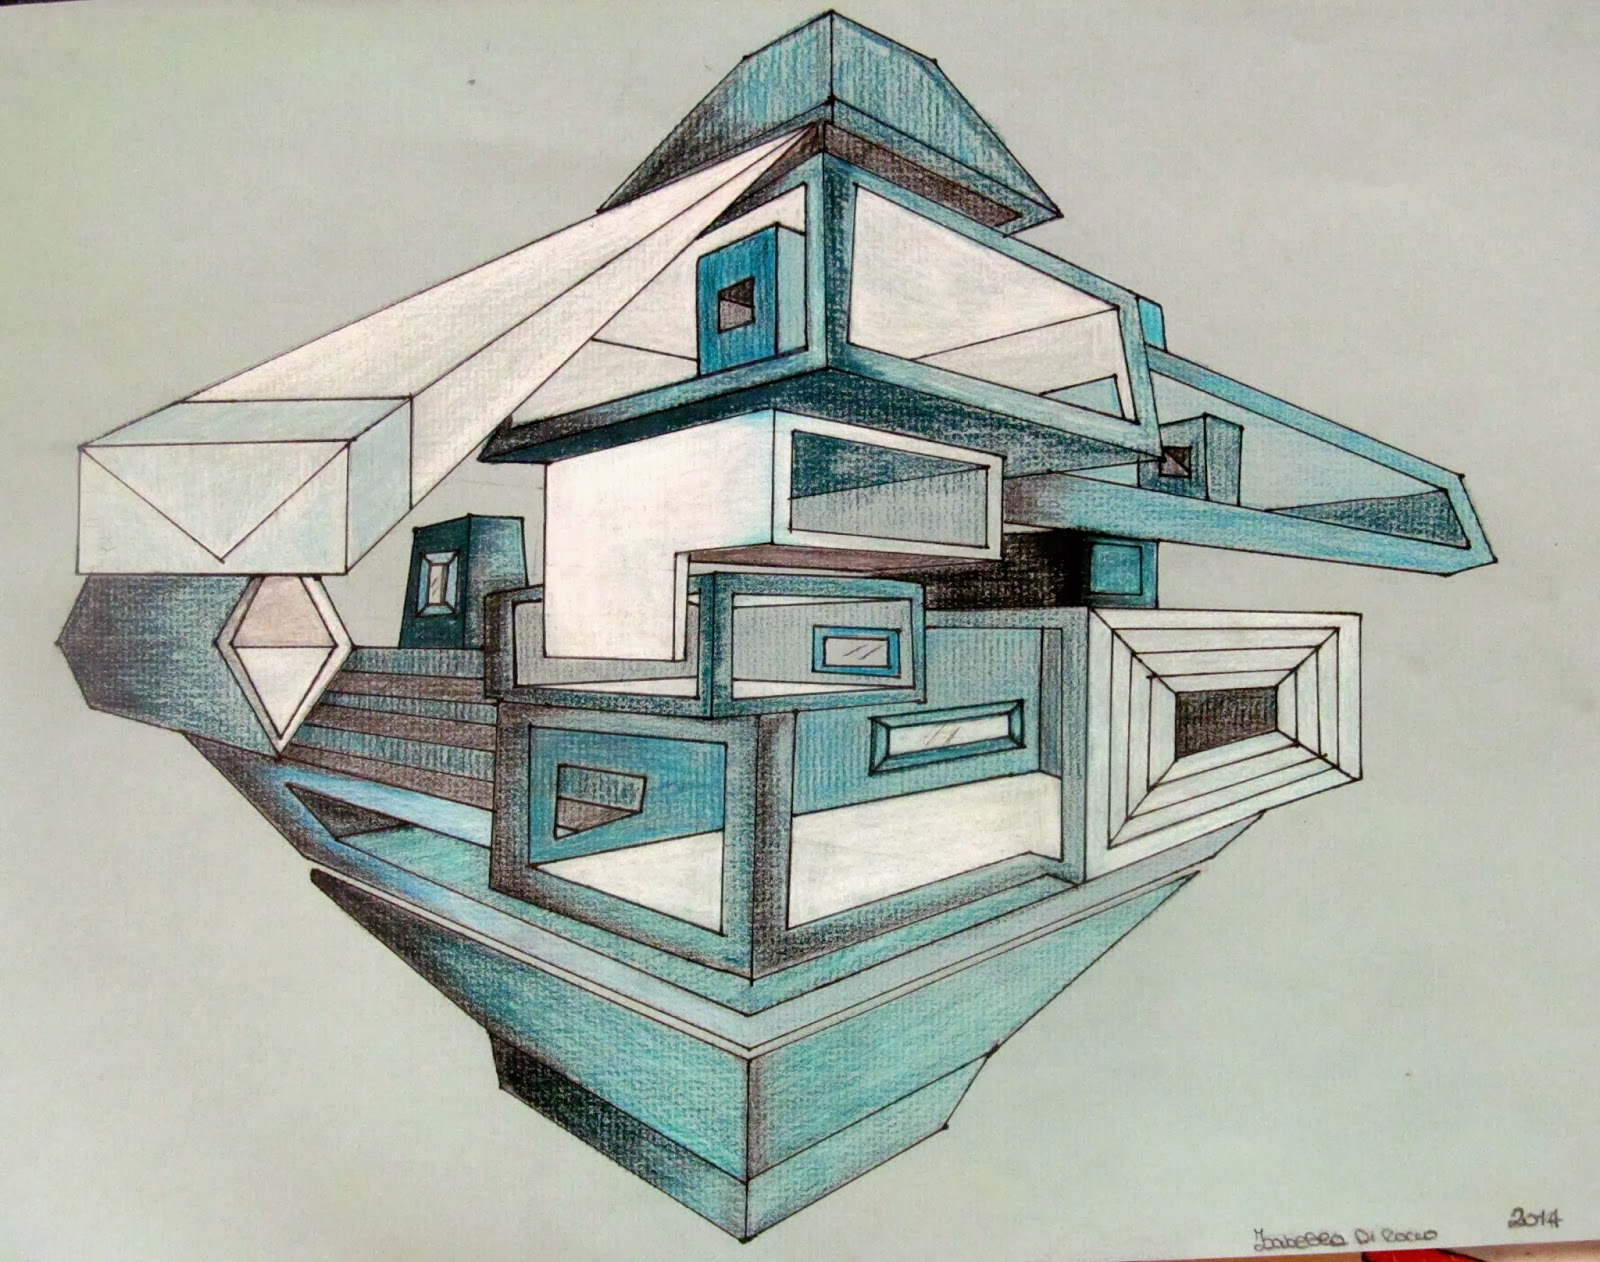 D Darawings Of Buildings  Point Perspective